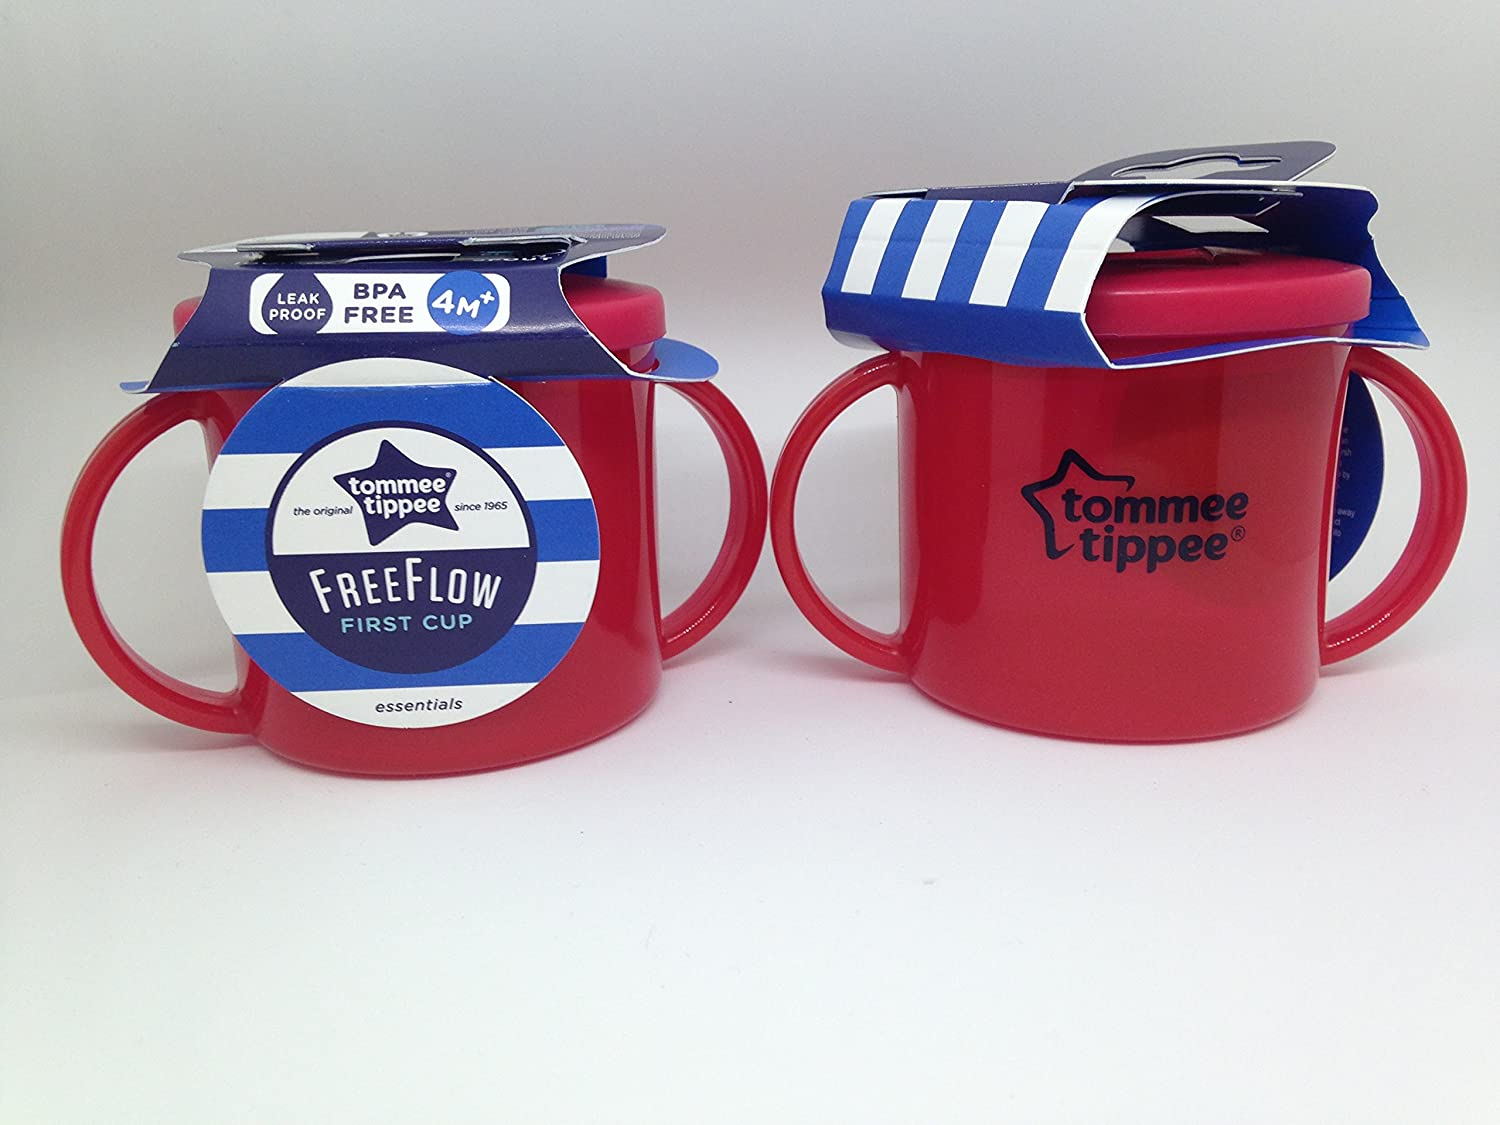 Tommee Tippee First Cup - Pack of 2 (2 x Red)